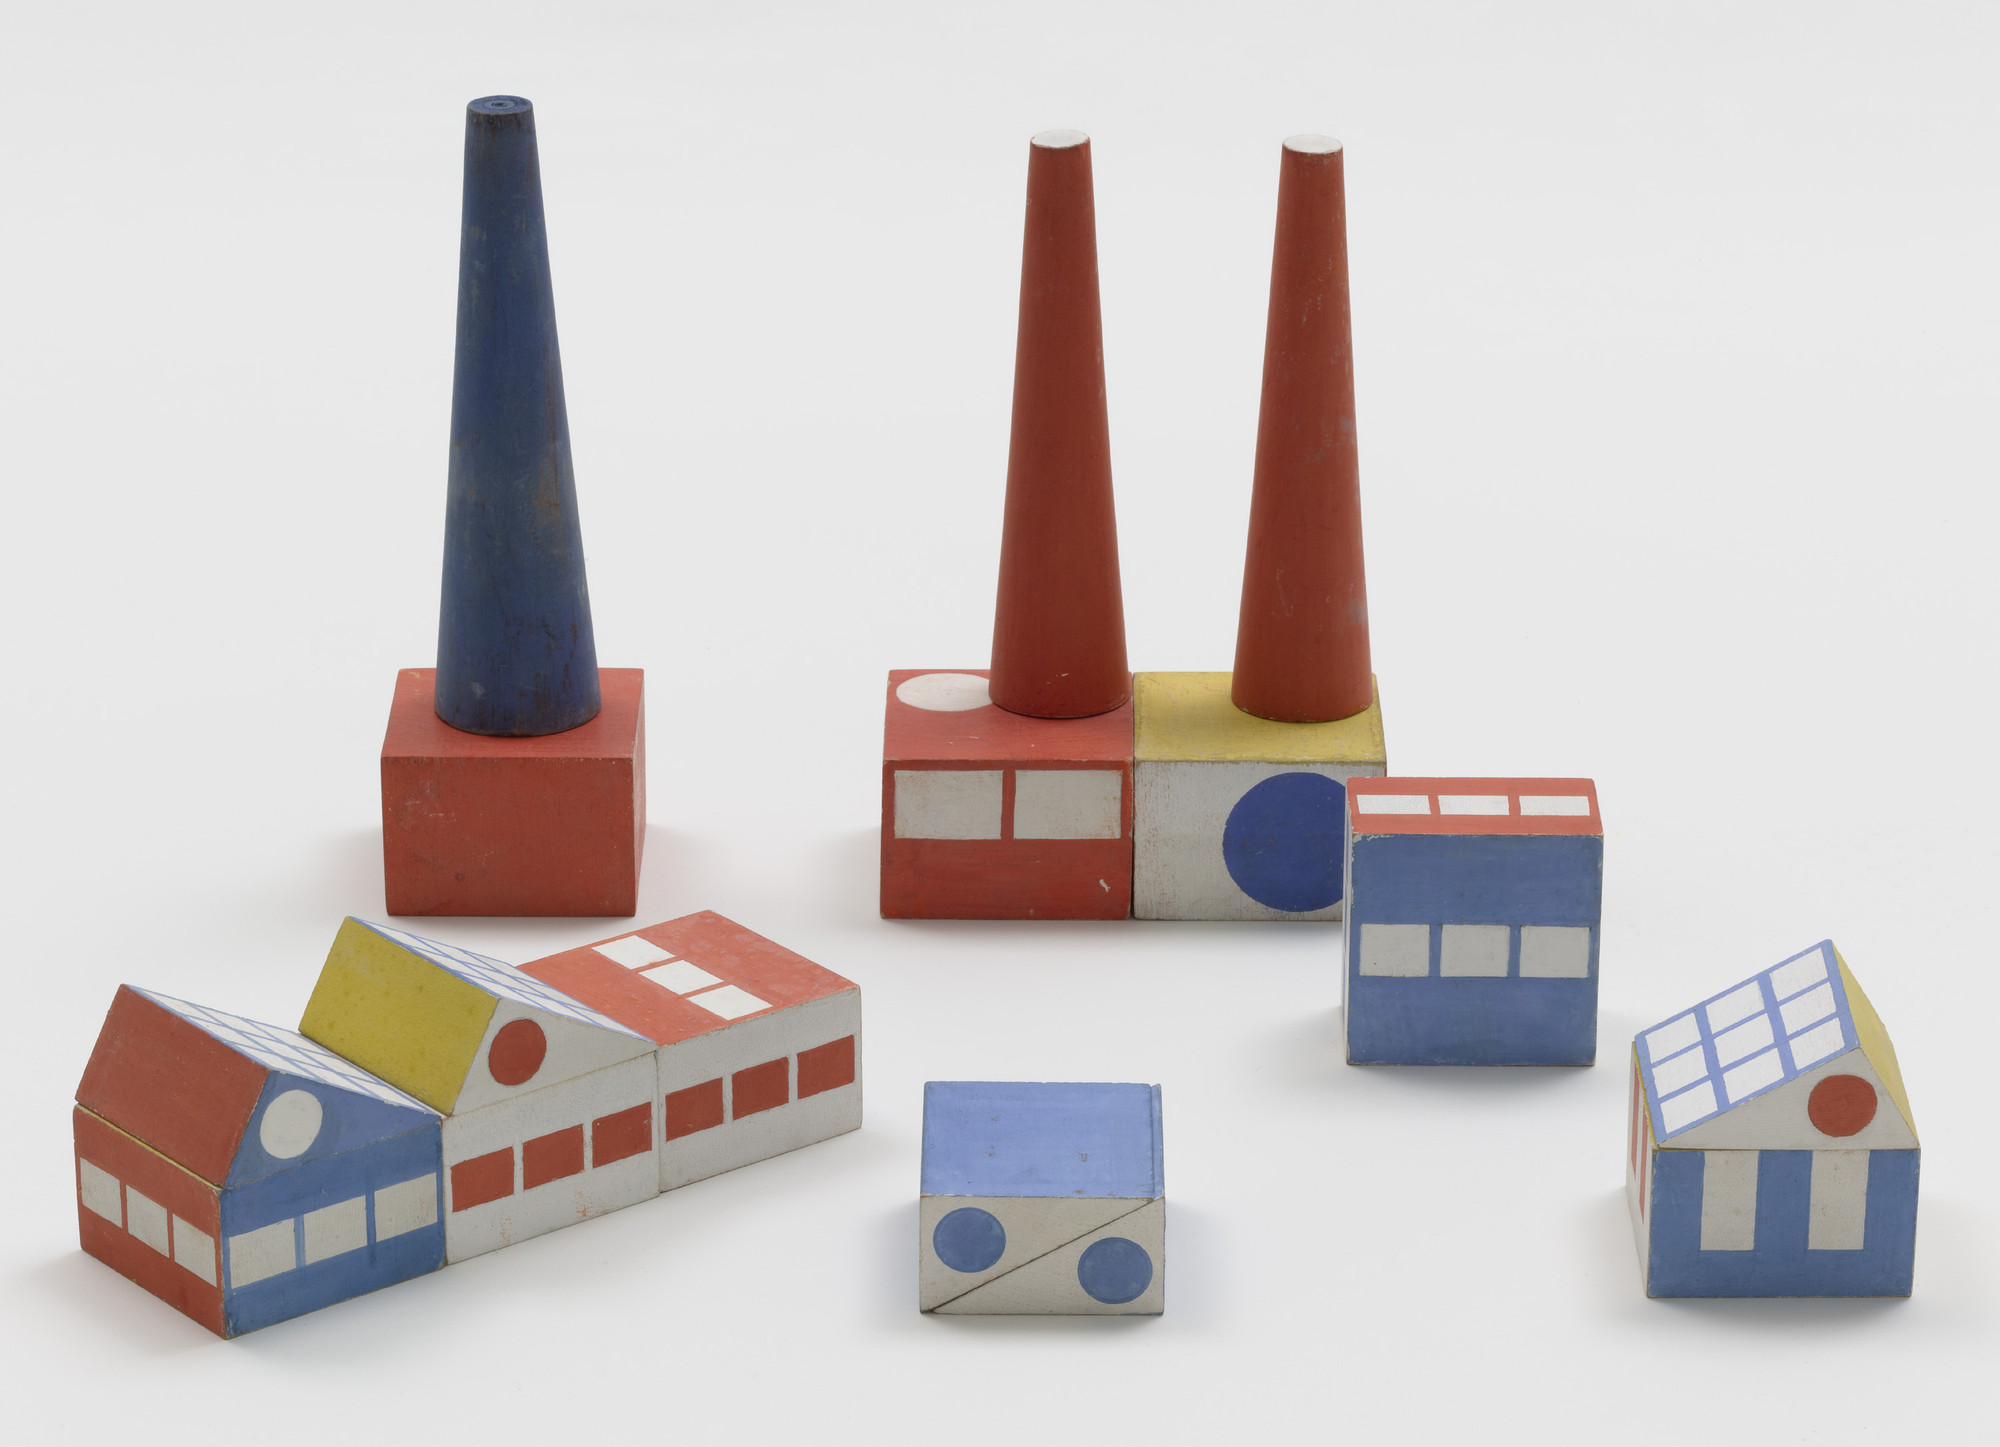 Ladislav Sutnar. Prototype for Build the Town Building Blocks. 1940–43. Painted wood, large block: 1 3⁄4 × 2 3⁄4 × 2 3/4″ (4.4 × 7 × 7 cm). The Museum of Modern Art, New York. Gift of Ctislav Sutnar and Radoslav Sutnar